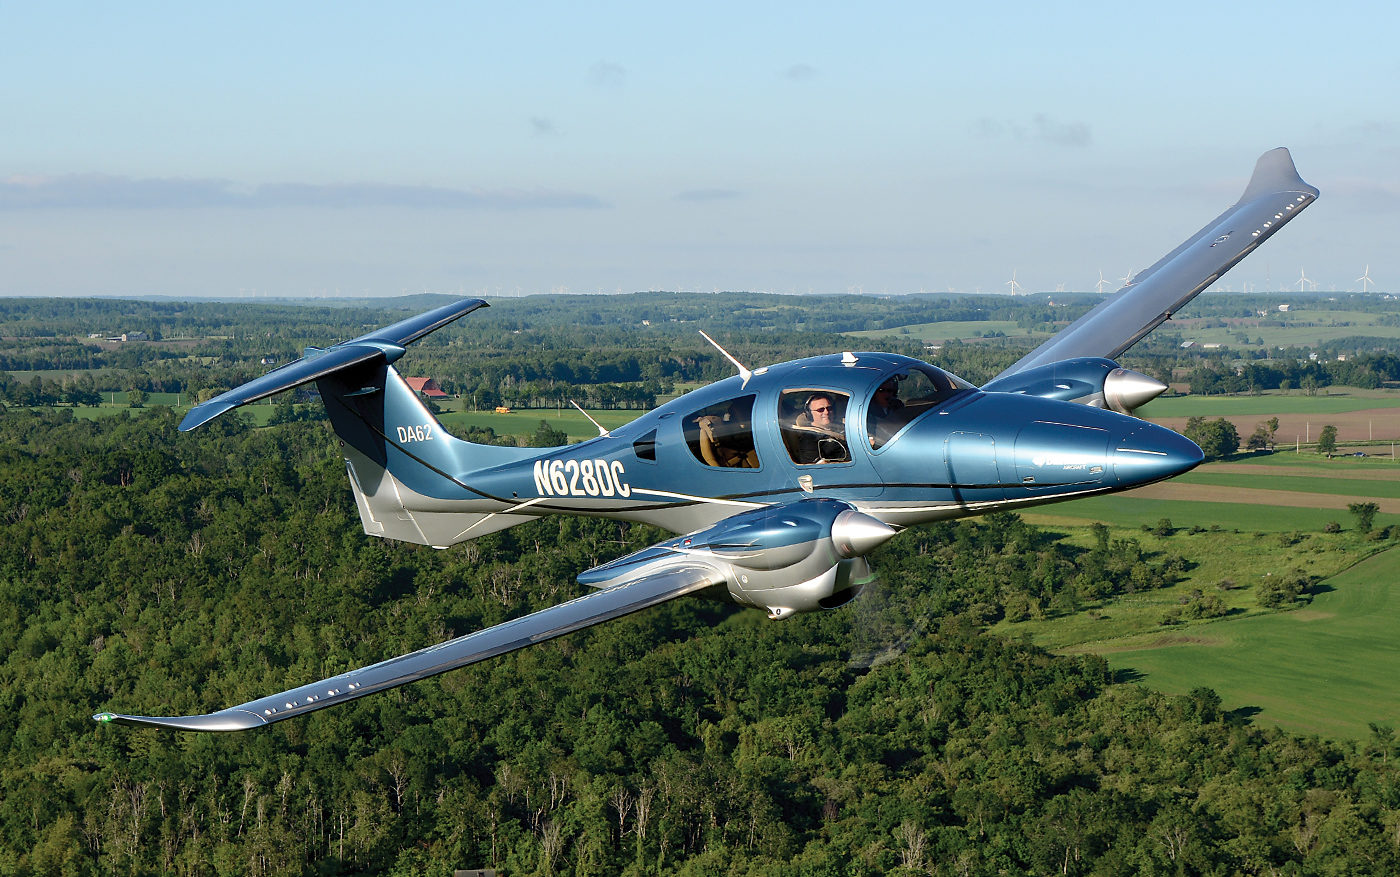 Diamond Aircraft's new all-composite DA62 fits a myriad of missions: twin-engine trainer, charter aircraft, corporate shuttle and personal transport. Production is being transferred from Diamond Austria to the plant in London, Ont., with the Canadian branch converting the type certificate to Transport Canada authority, a process it hopes to conclude by mid-November 2017. Photos by Eric Dumigan